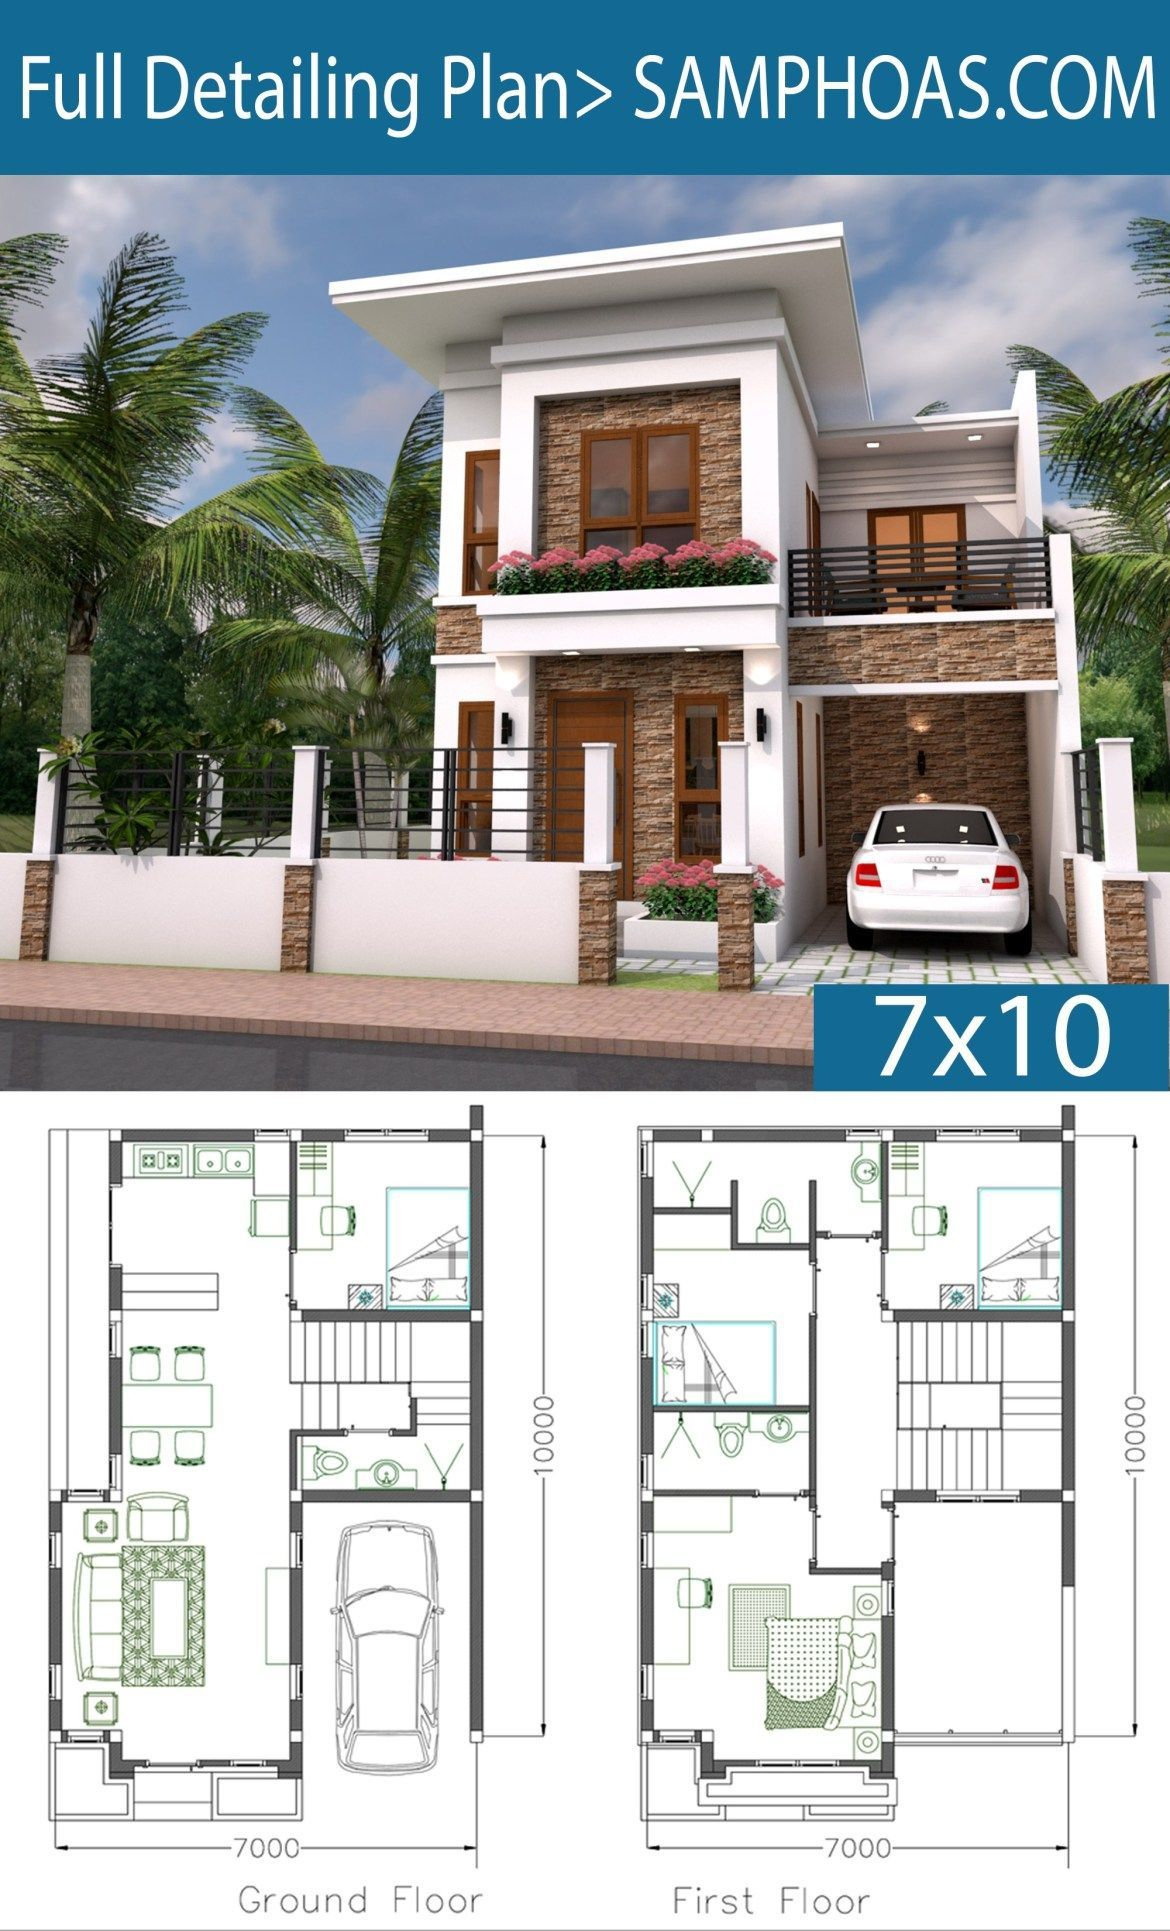 Sketchup Speed Build Home Plan 7x10 House Design Photos Model House Plan Two Story House Design